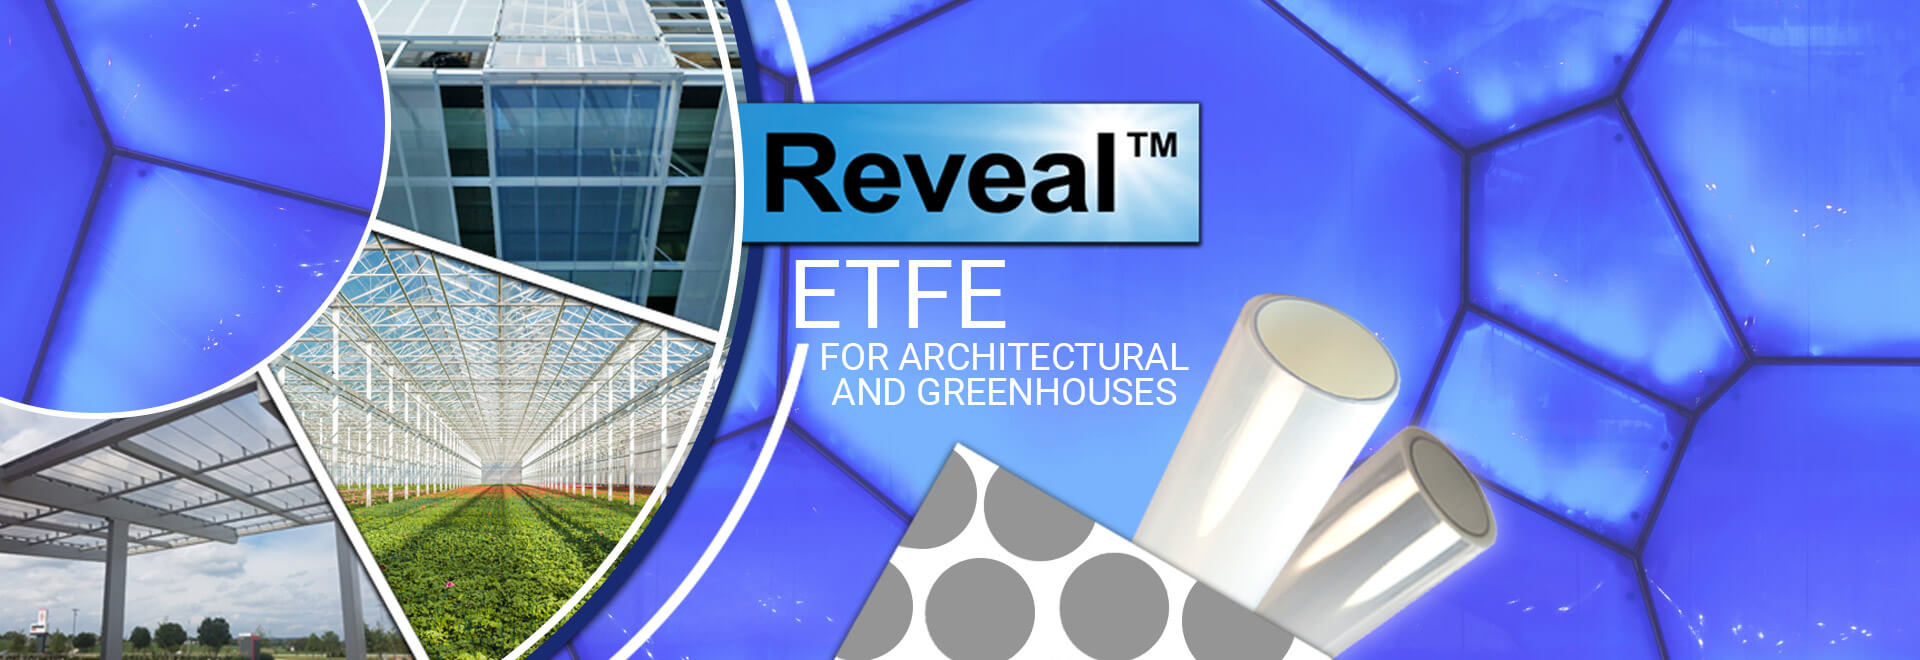 ETFE, etfe film, etfe films, etfe membranes, greenhouse materials, architectural foil, architectural film, high performance film, fluoropolymers